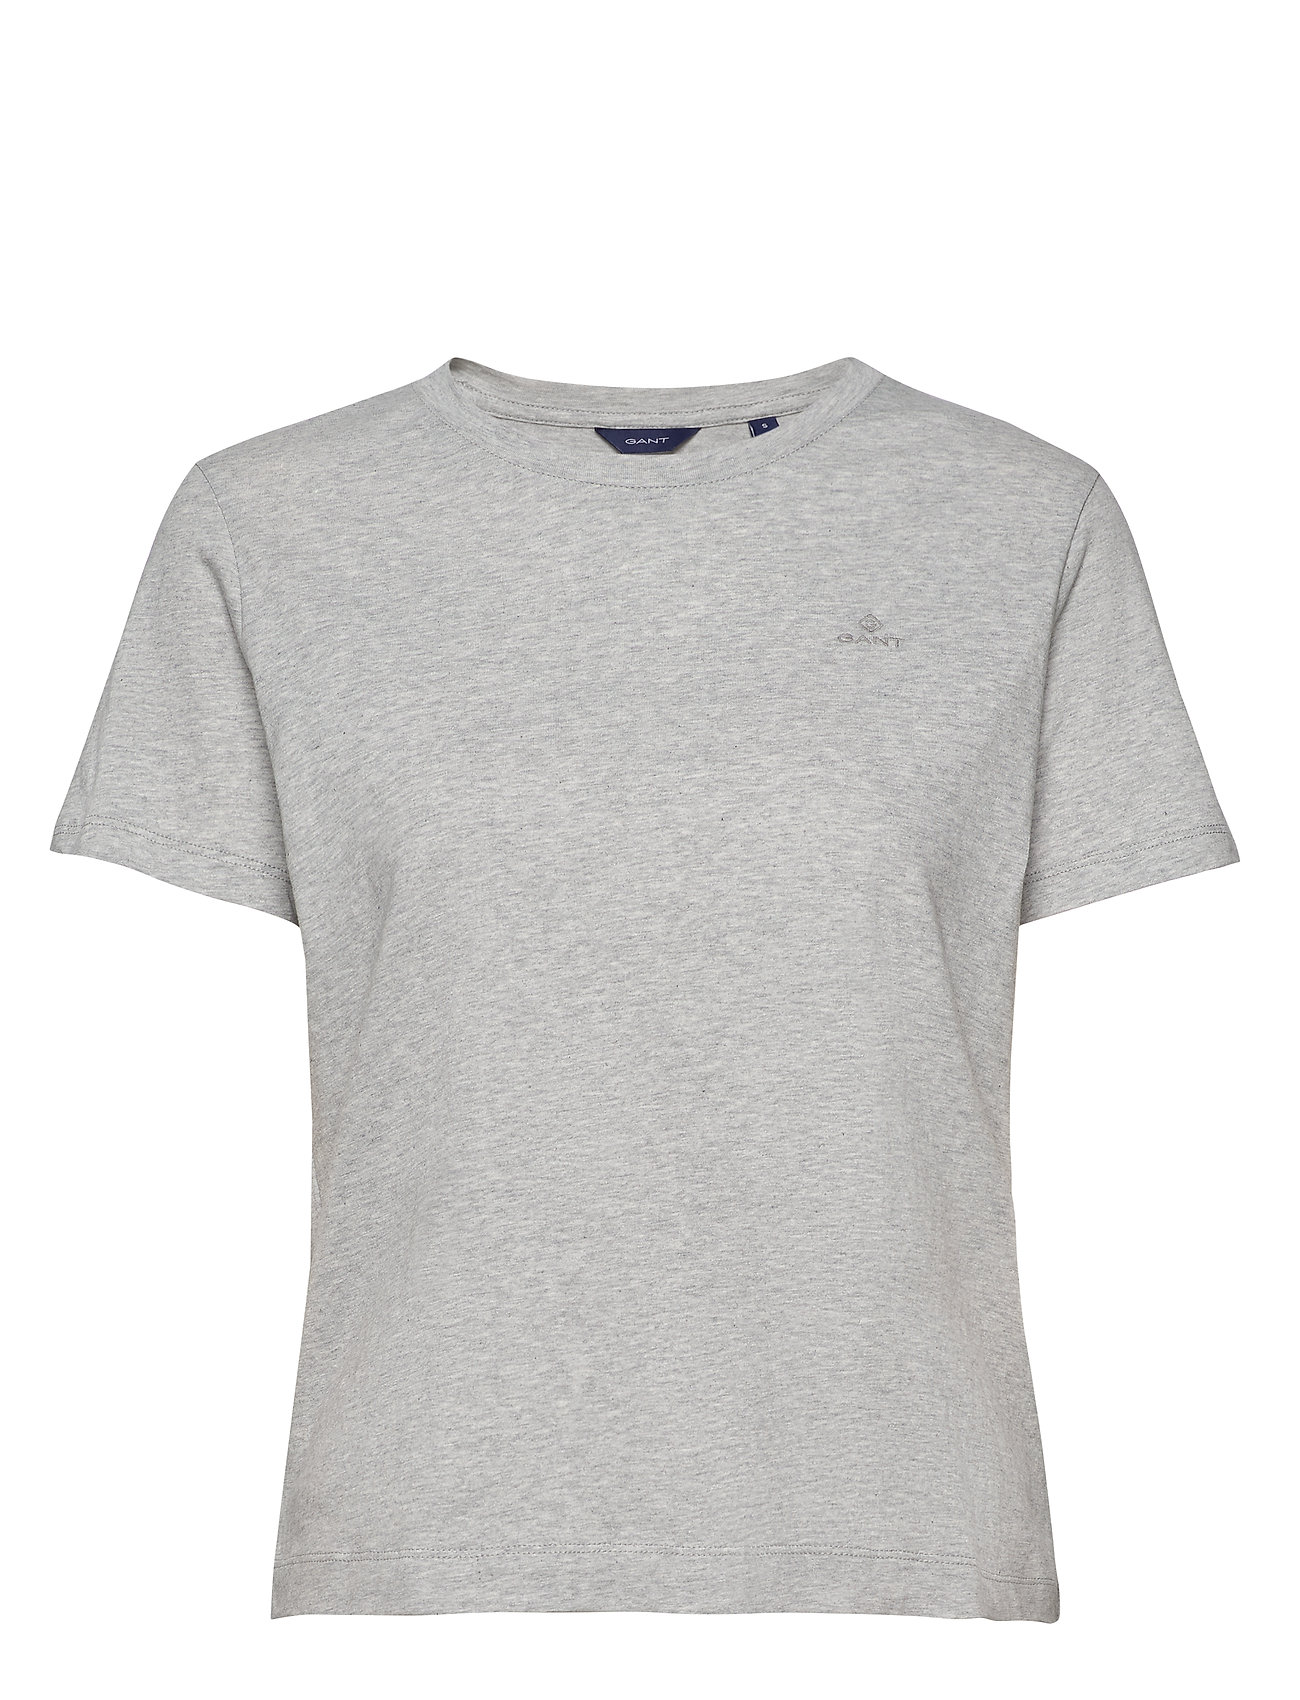 Gant THE ORIGINAL SS T-SHIRT - LIGHT GREY MELANGE